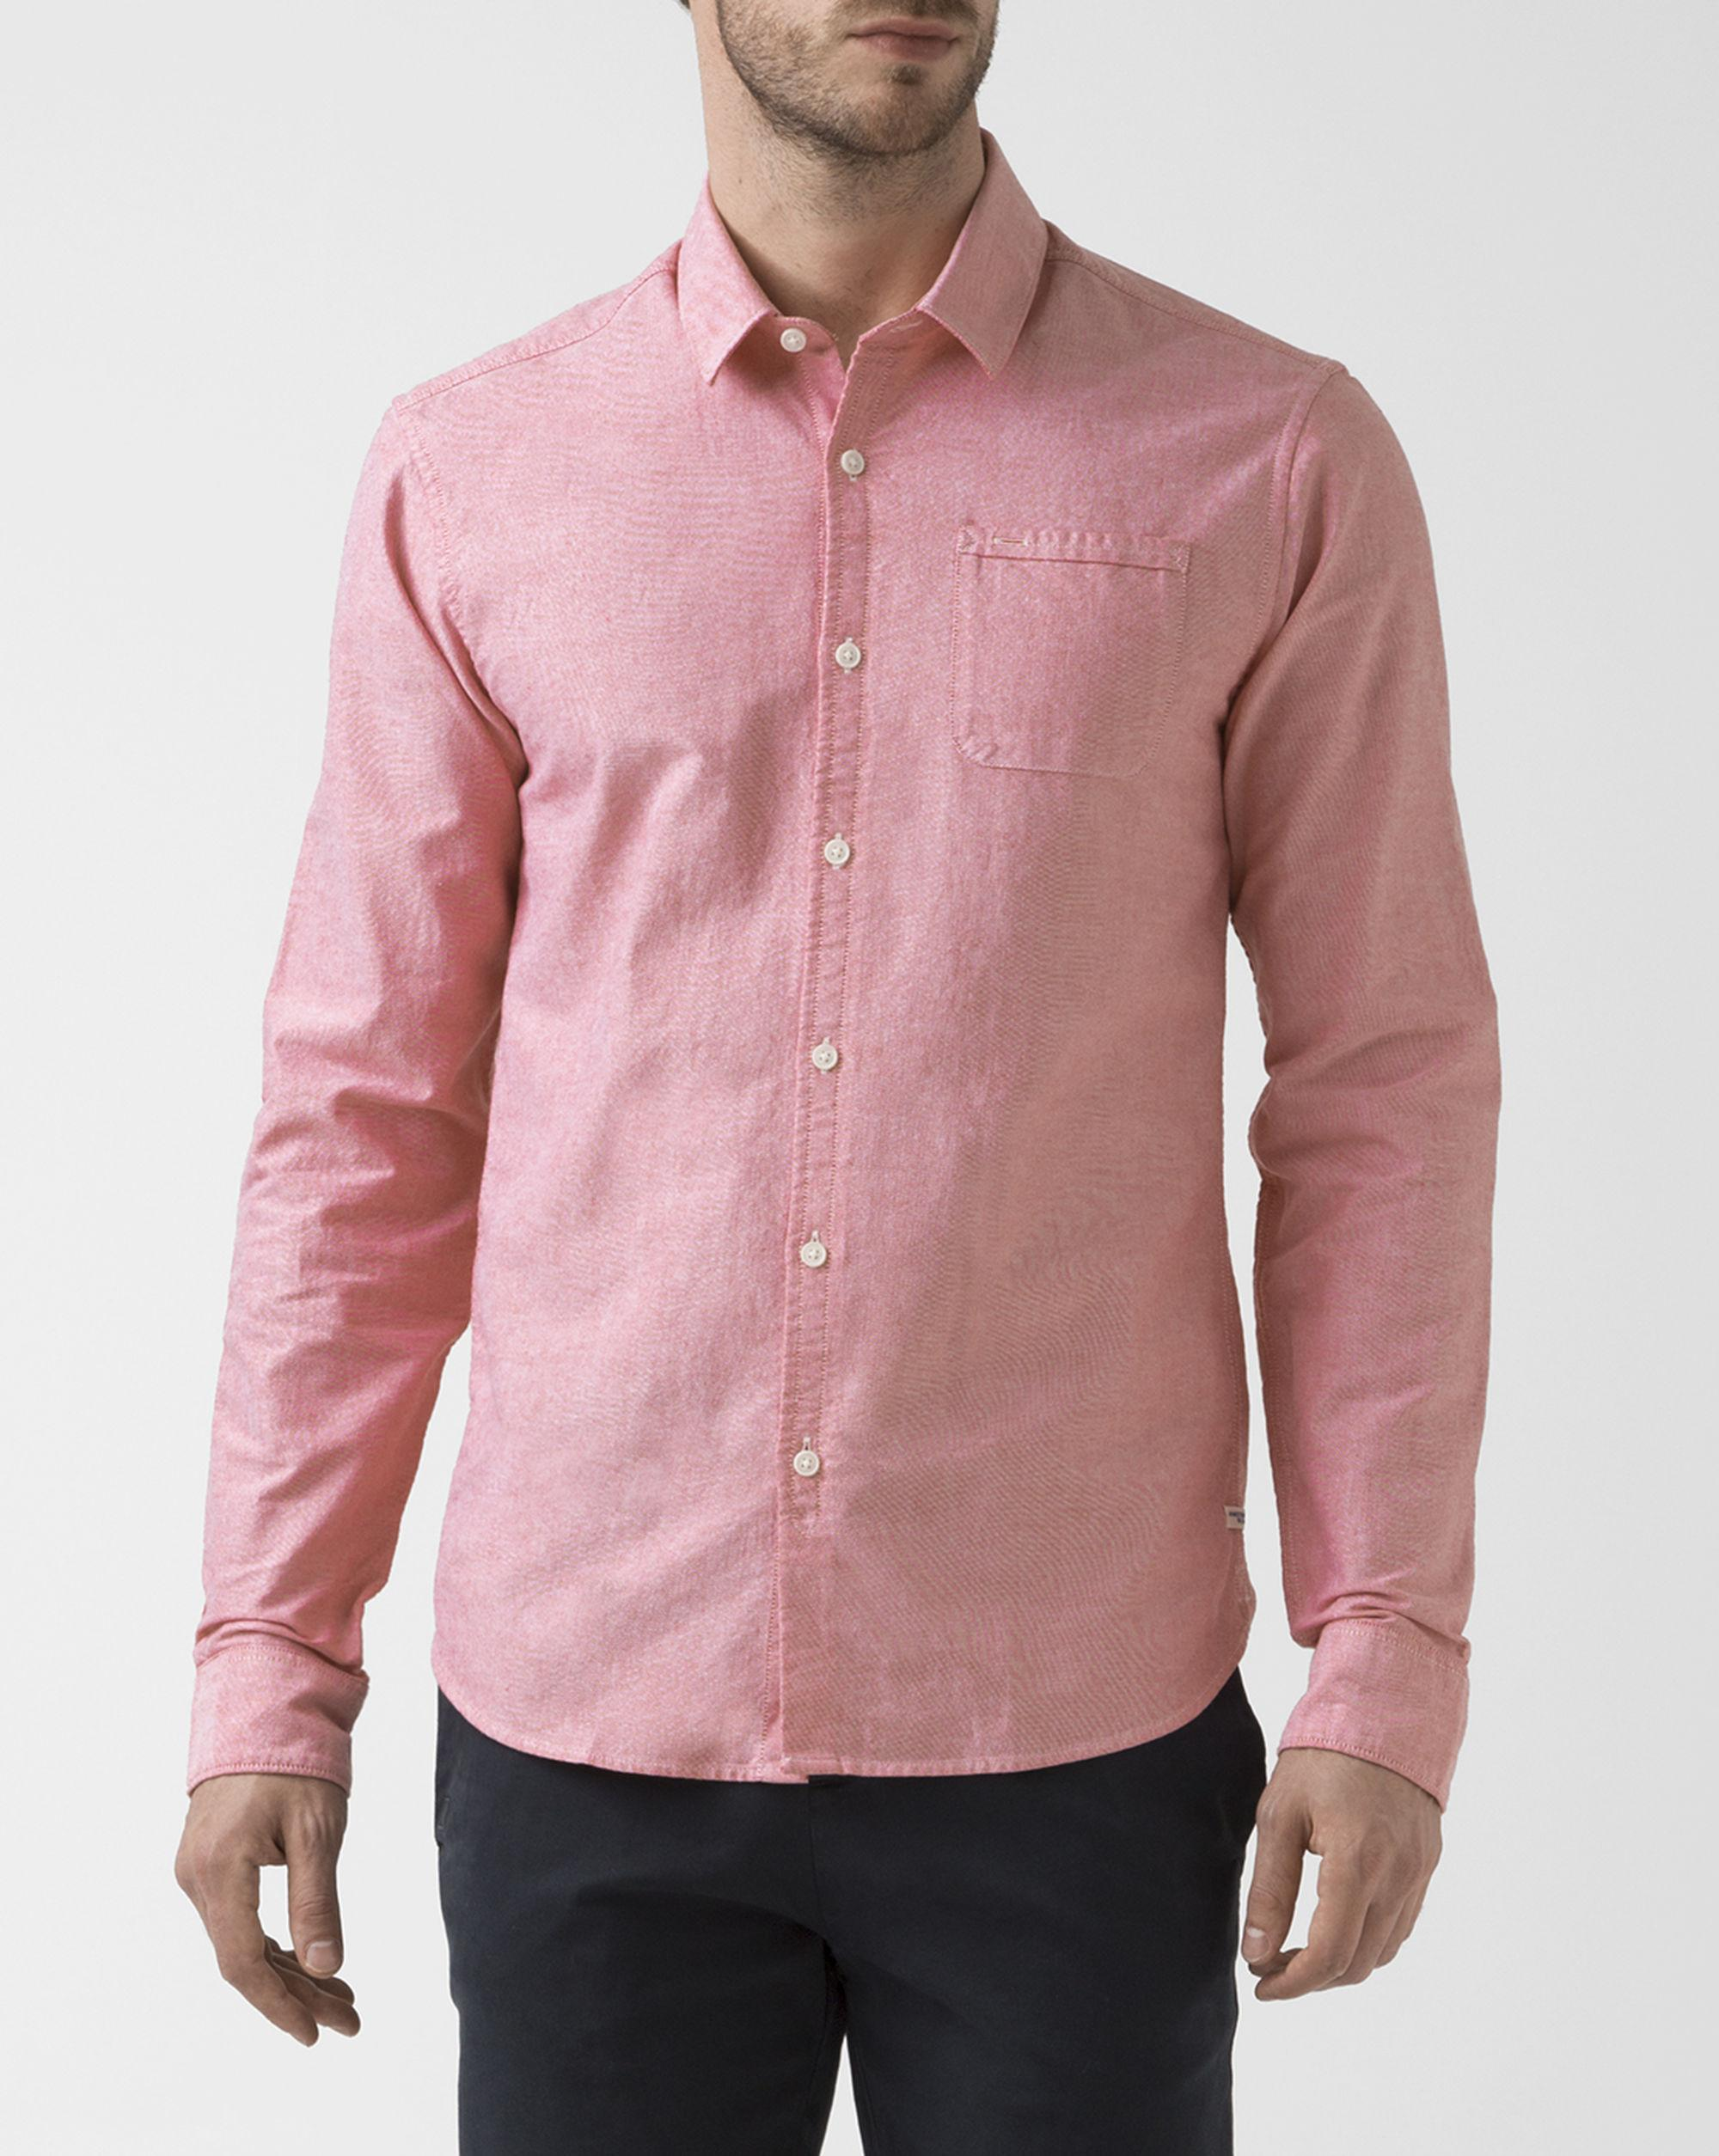 Scotch soda pink pocket oxford shirt in pink for men lyst for Pink oxford shirt men